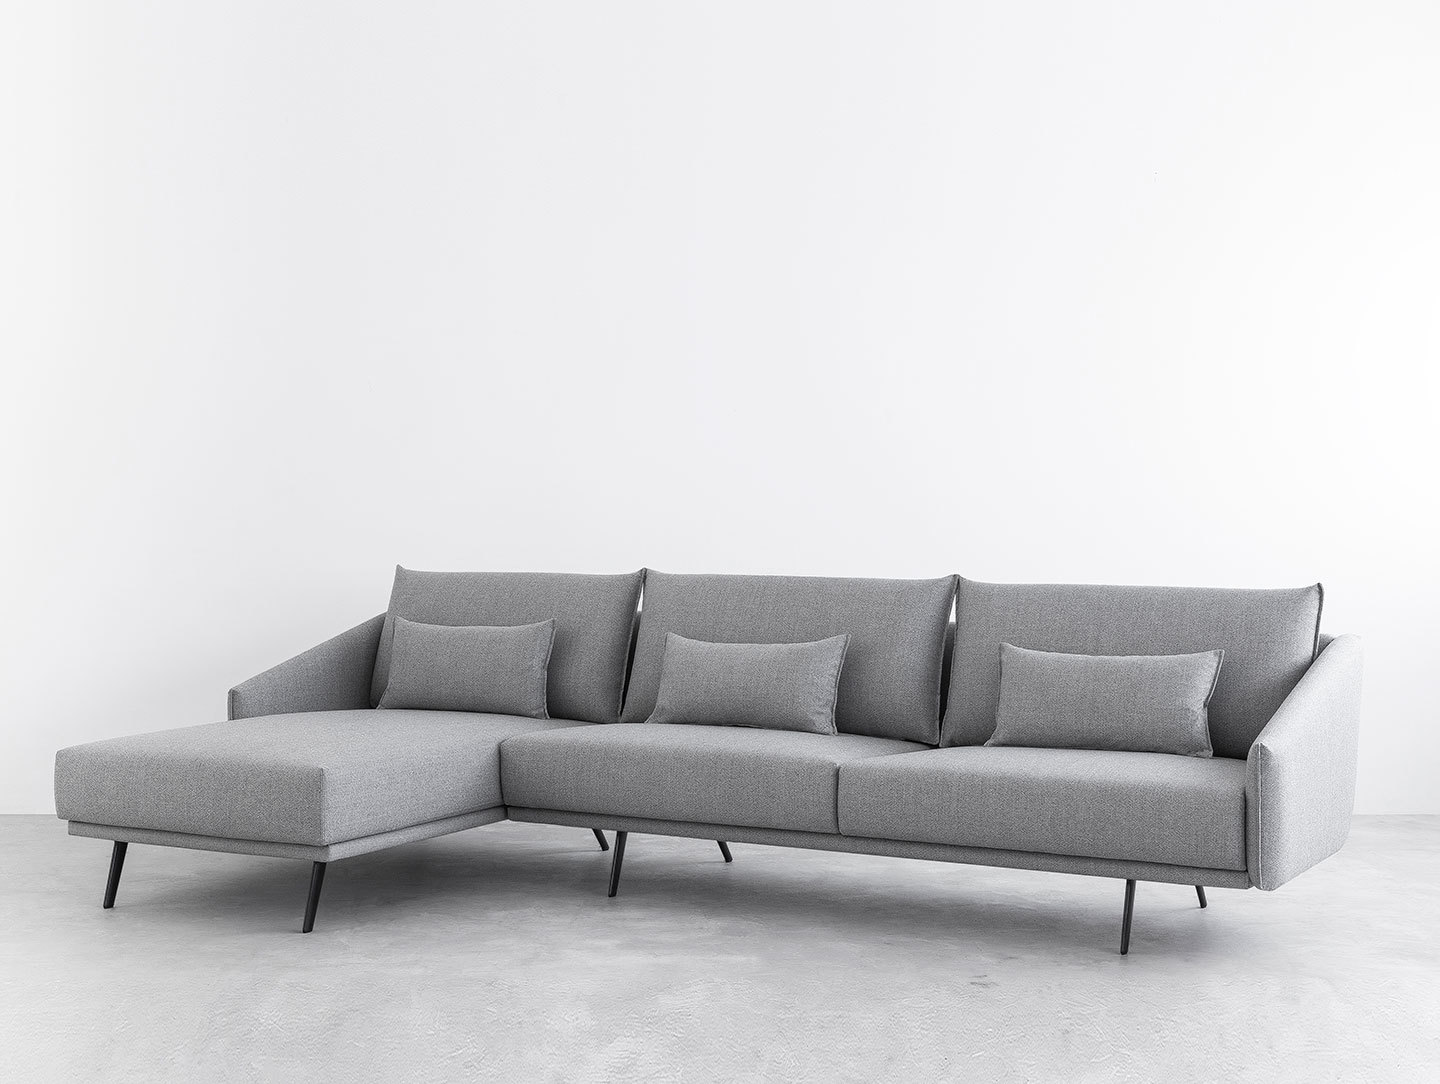 Stua Costura Sofa With Chaise Jon Gasca